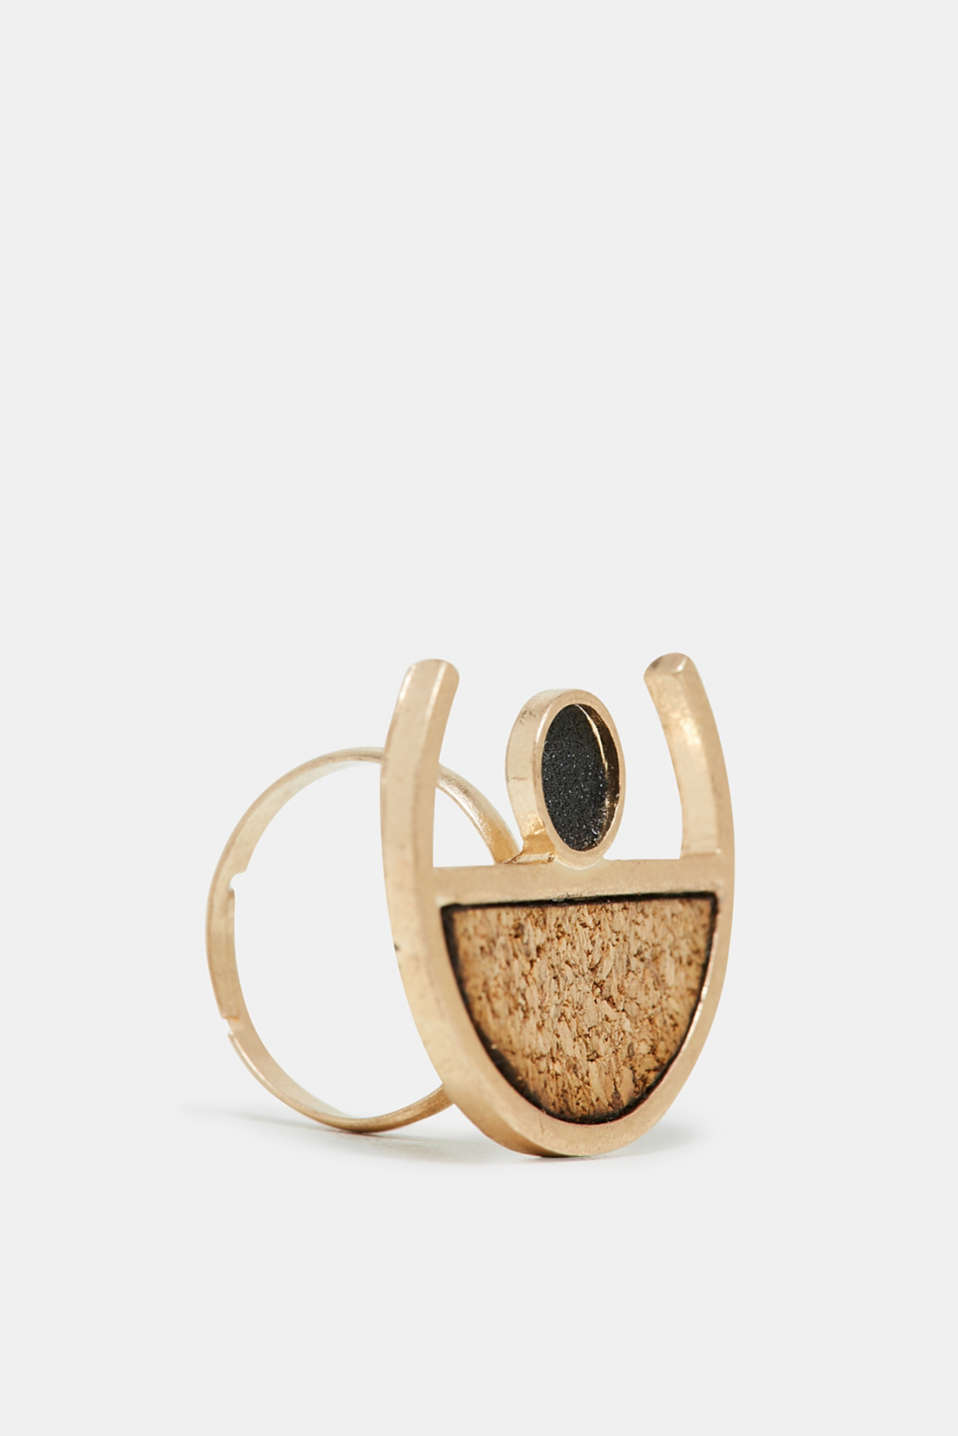 Statement ring with cork and glitter